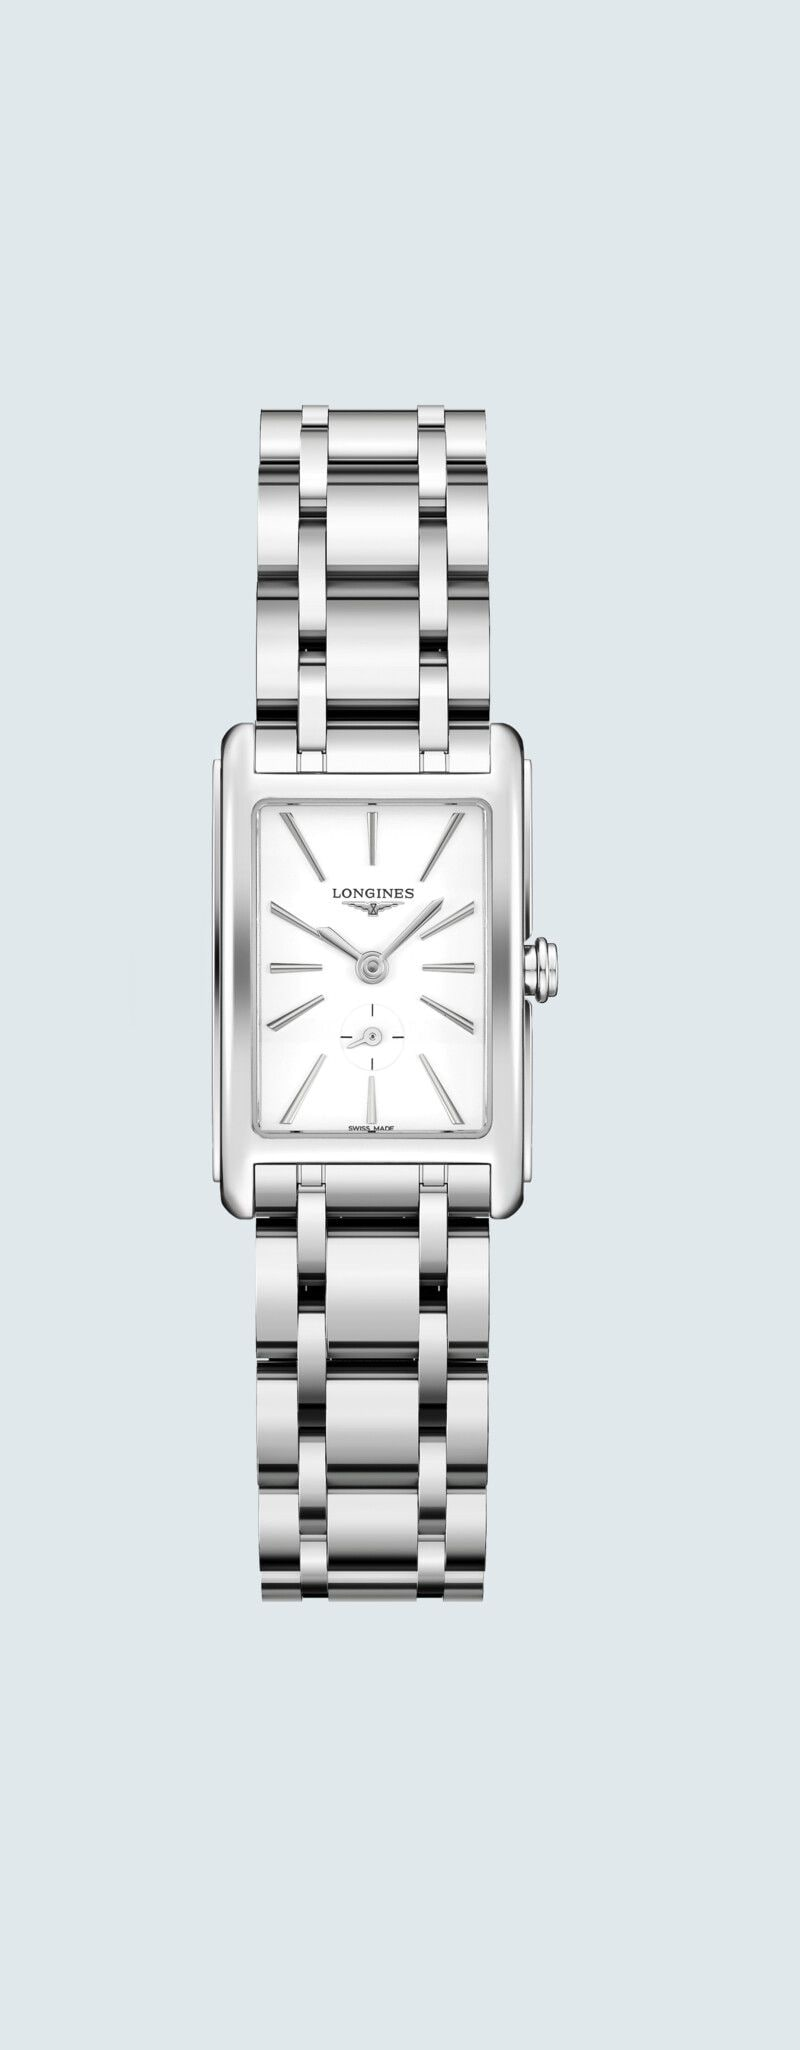 20.80 X 32.00 mm Stainless steel case with White matt dial and Stainless steel strap - case zoom vi